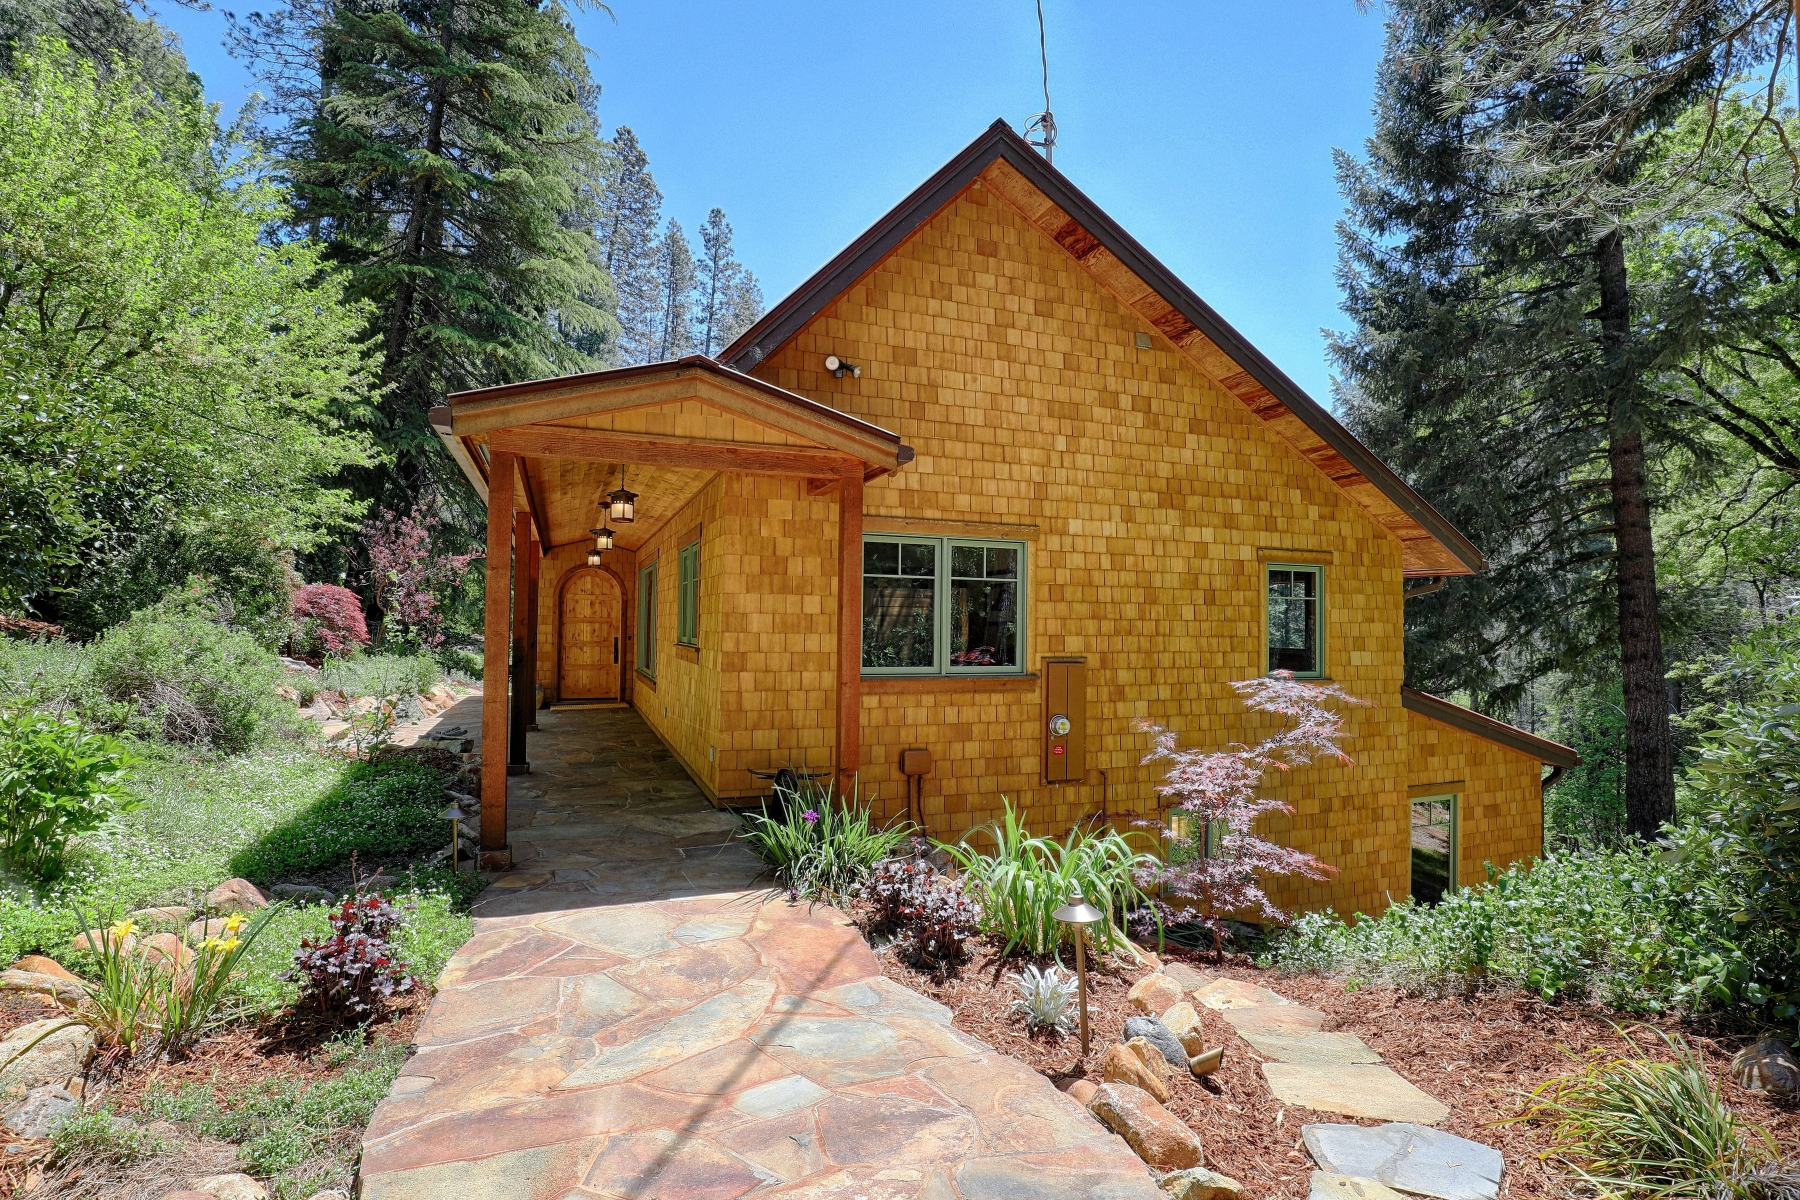 Additional photo for property listing at 353 Old Downieville Hwy, Nevada City, CA 353 Old Downieville Hwy Nevada City, California 95959 United States